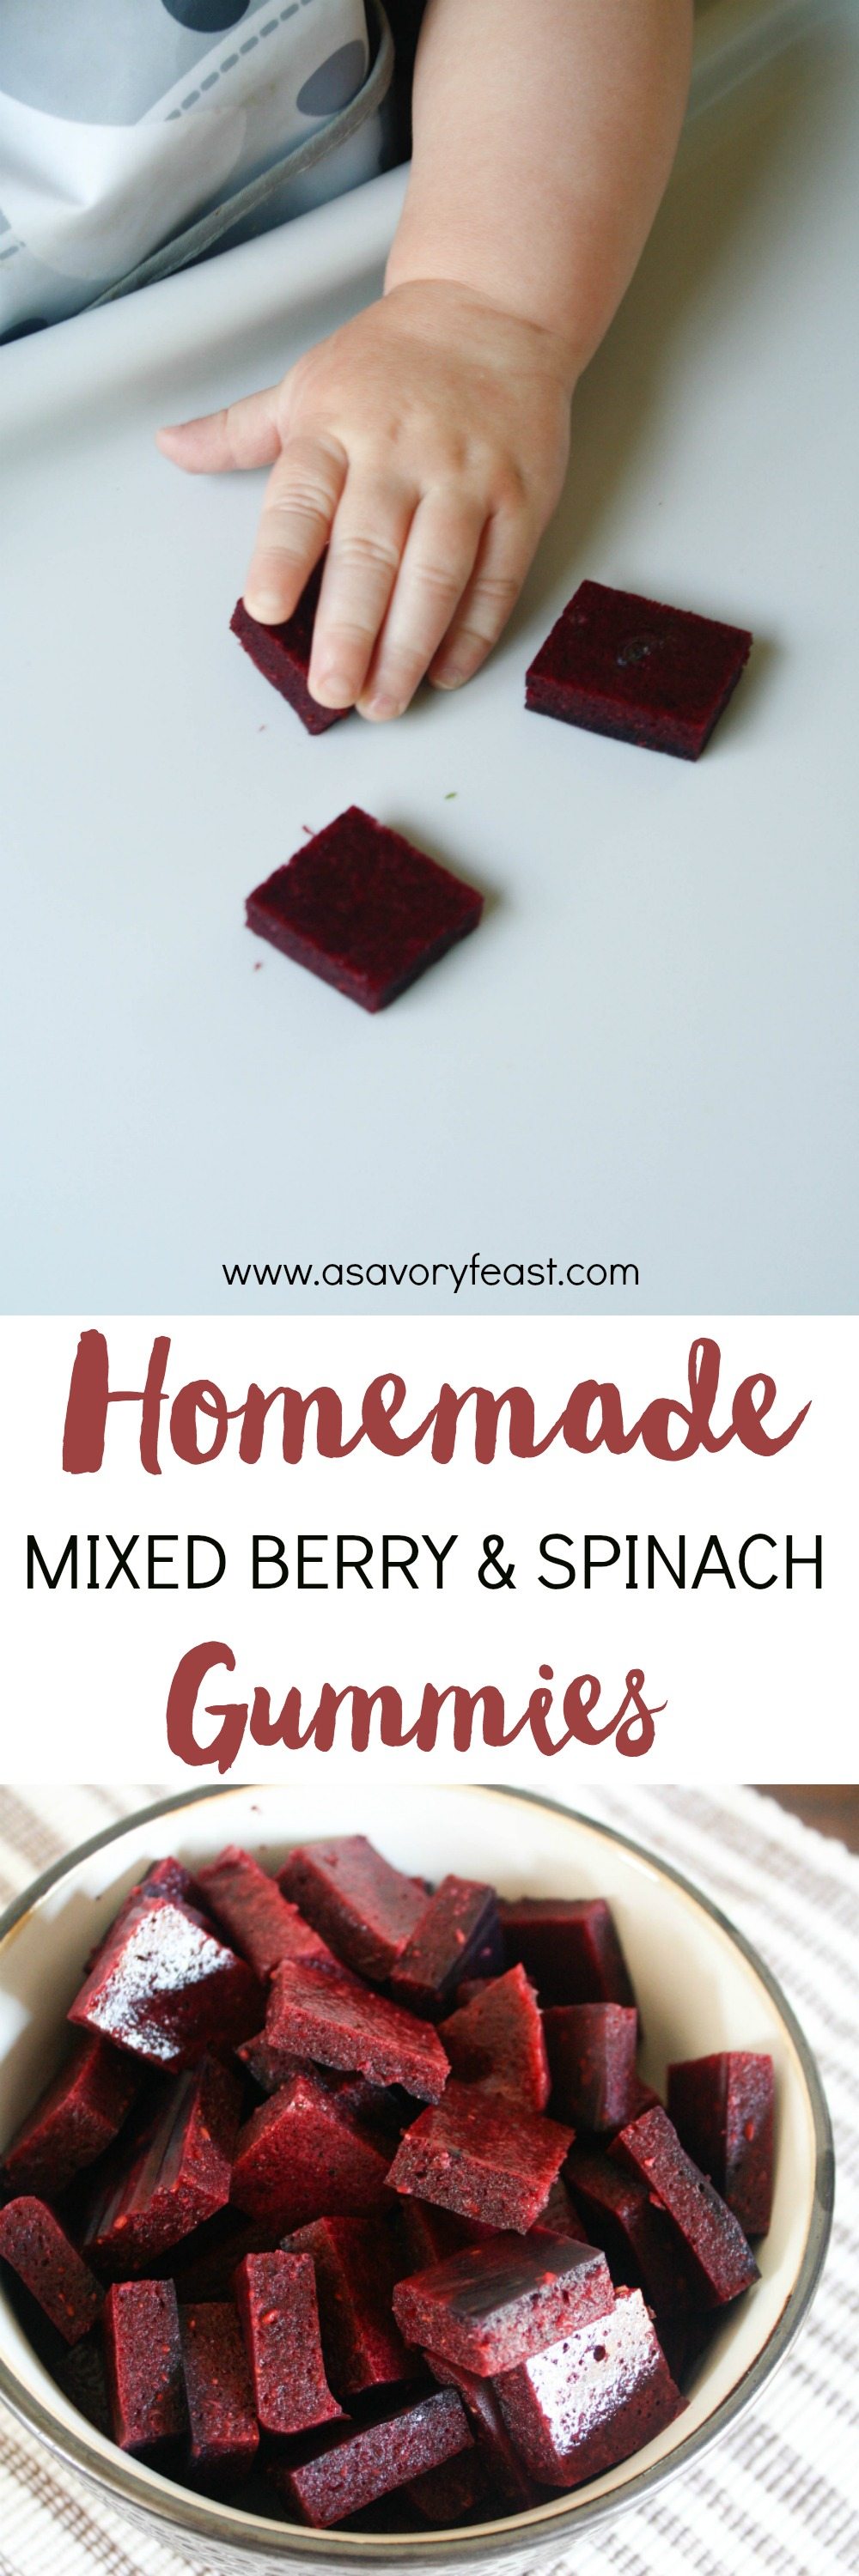 A healthy snack that is perfect for kids, or the kid in you! These Homemade Mixed Berry & Spinach Gummies are sugar free and packed with fruits and veggies. Not only are these snacks packed with real fruit, but they are also a great way to sneak in some vegetables! A snack that babies, toddlers and kids of all ages will love. | Snacks | Healthy Snacks | Snacks for Kids | Homemade Fruit Gummies